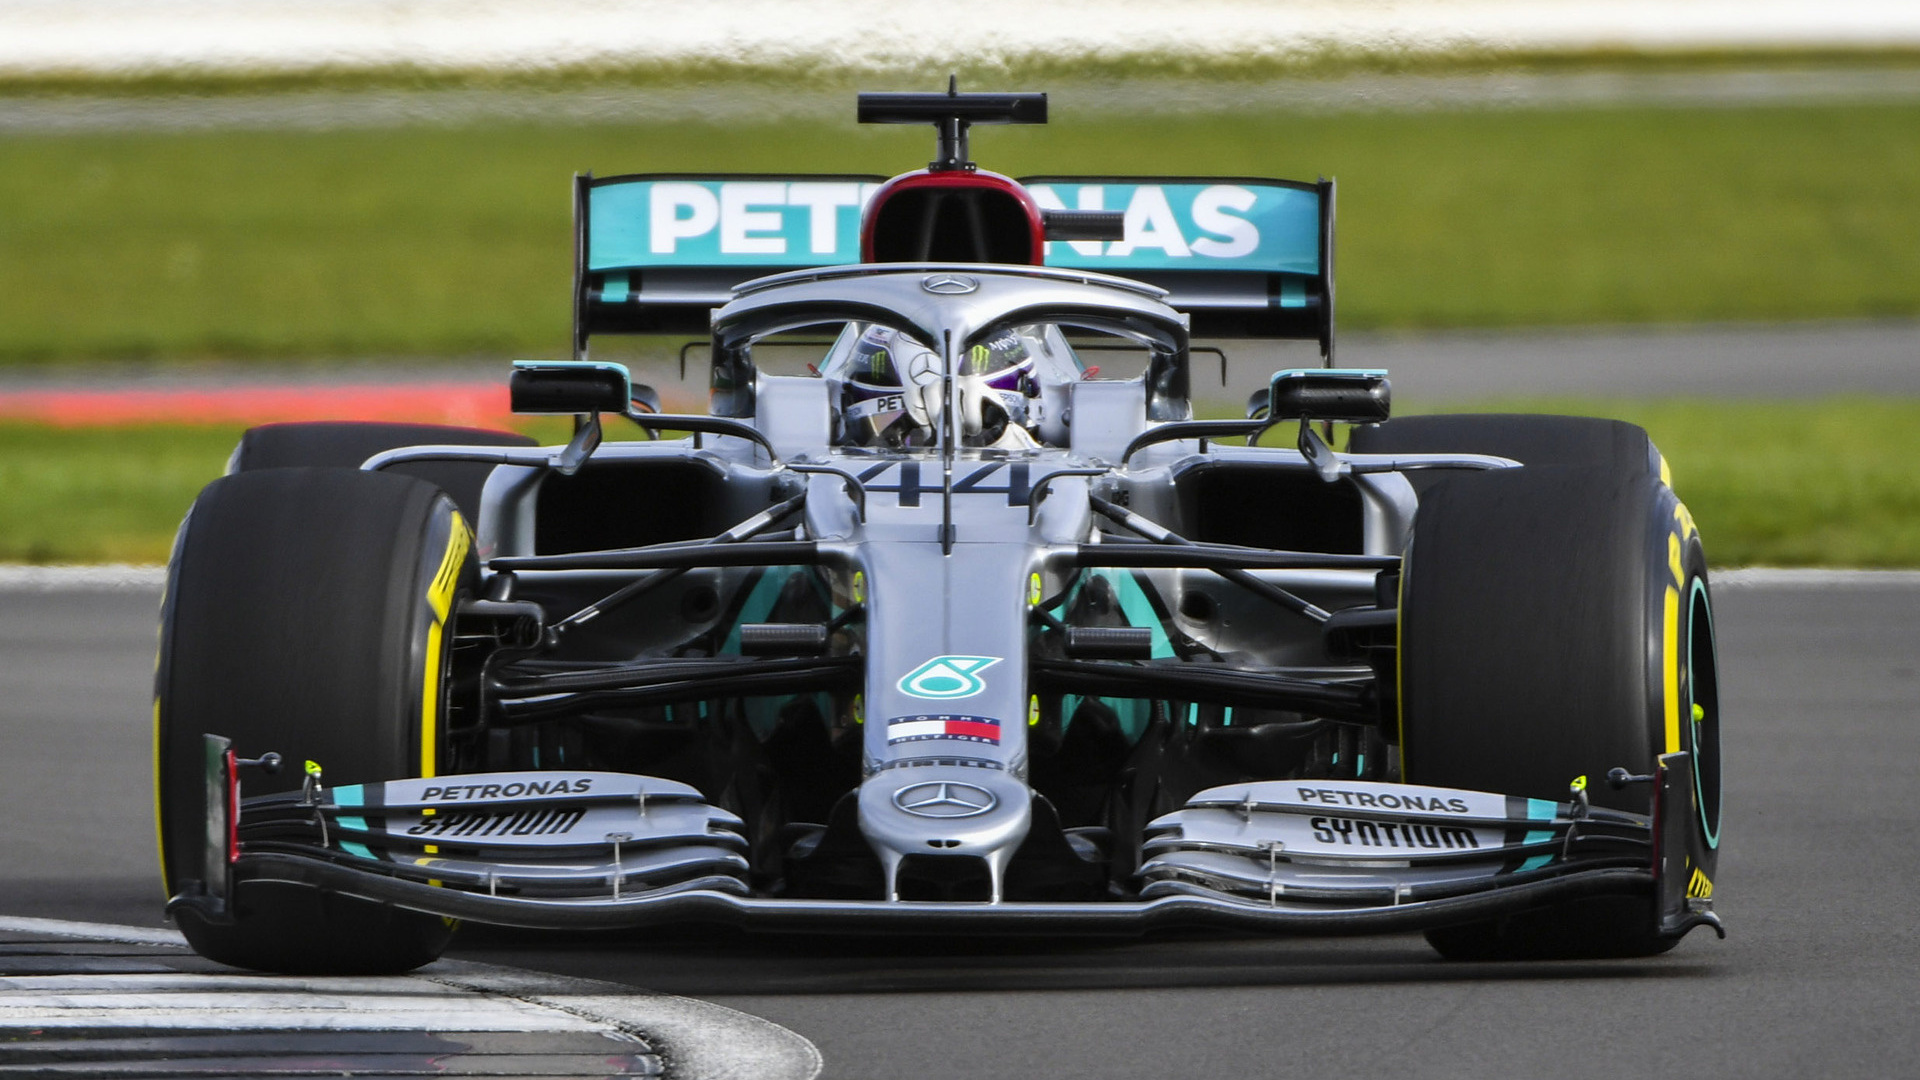 Performance Chrysler Jeep Dodge >> 2020 Mercedes-AMG F1 W11 EQ Performance - Wallpapers and HD Images | Car Pixel